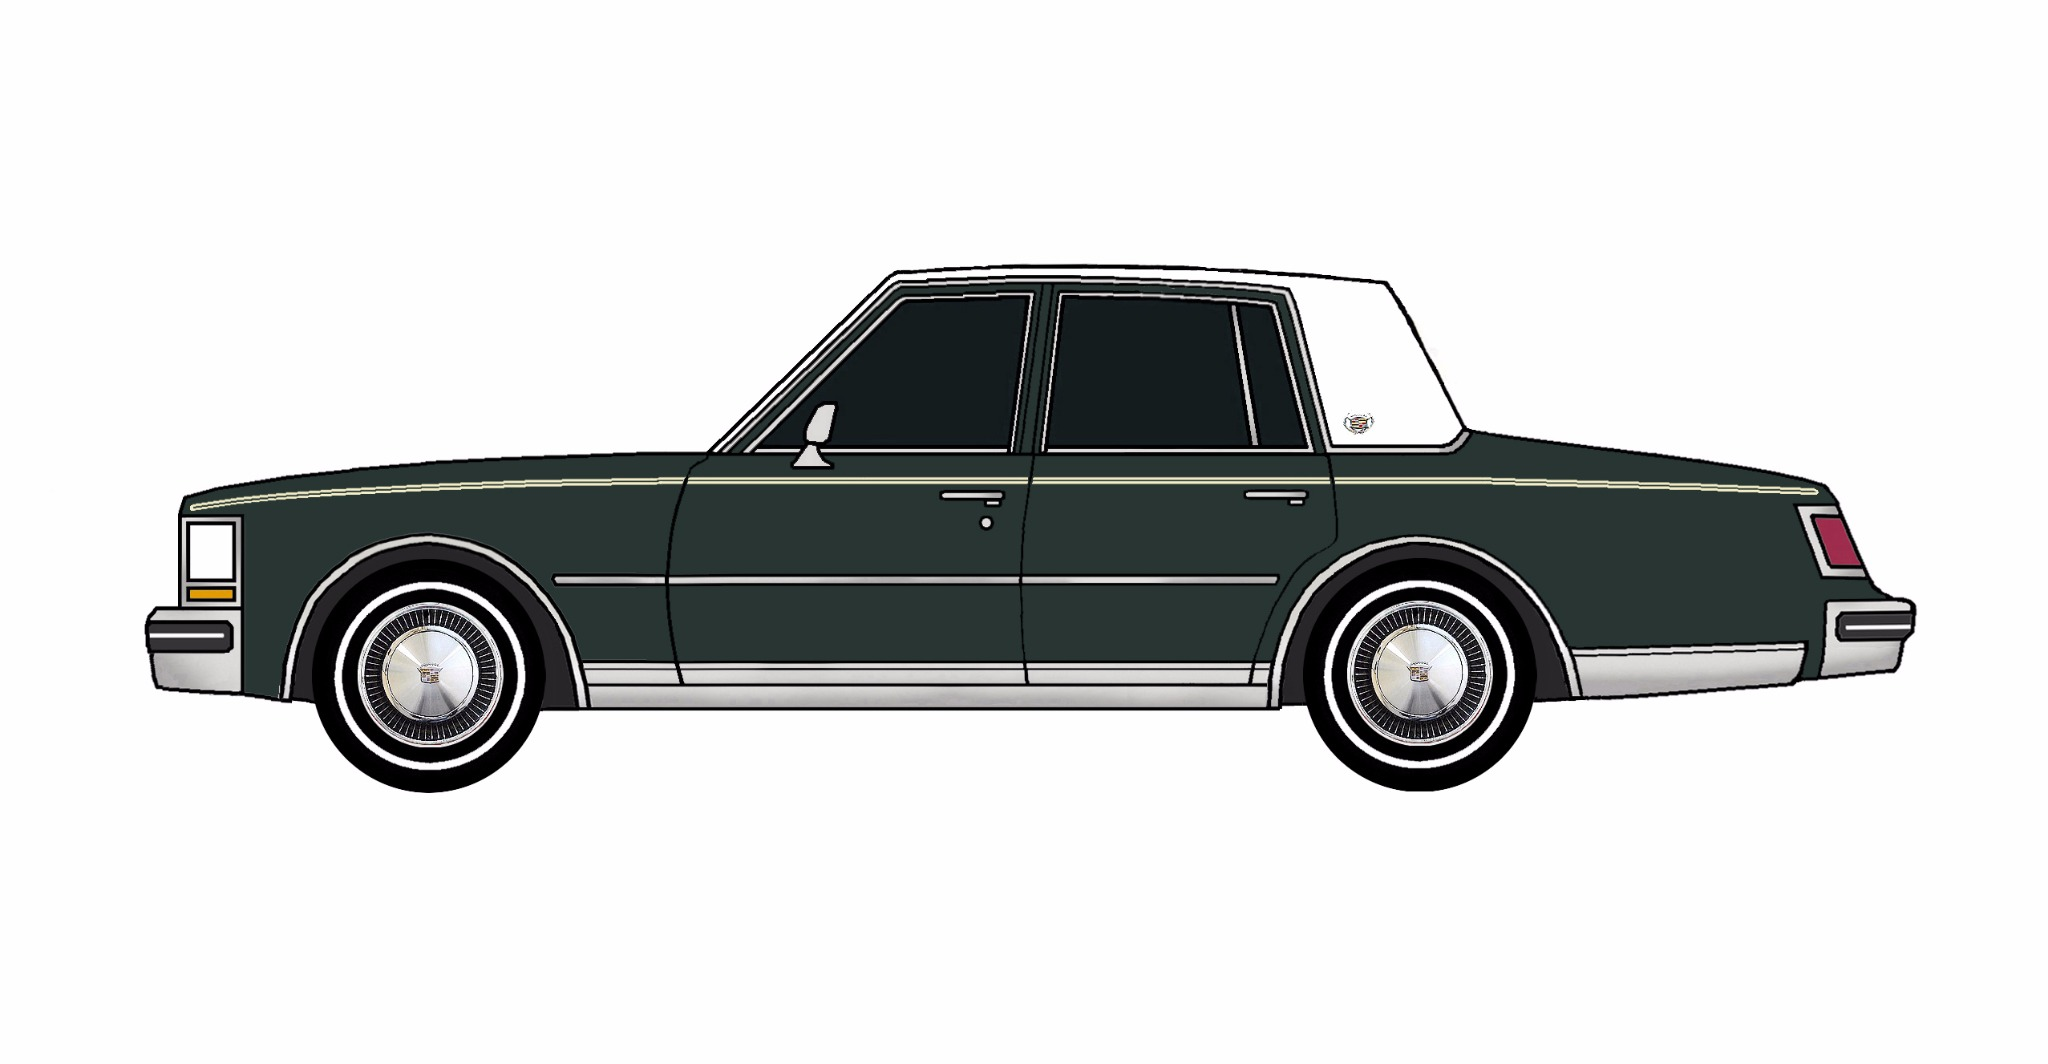 1976 Cadillac Seville DARK EVERGREEN